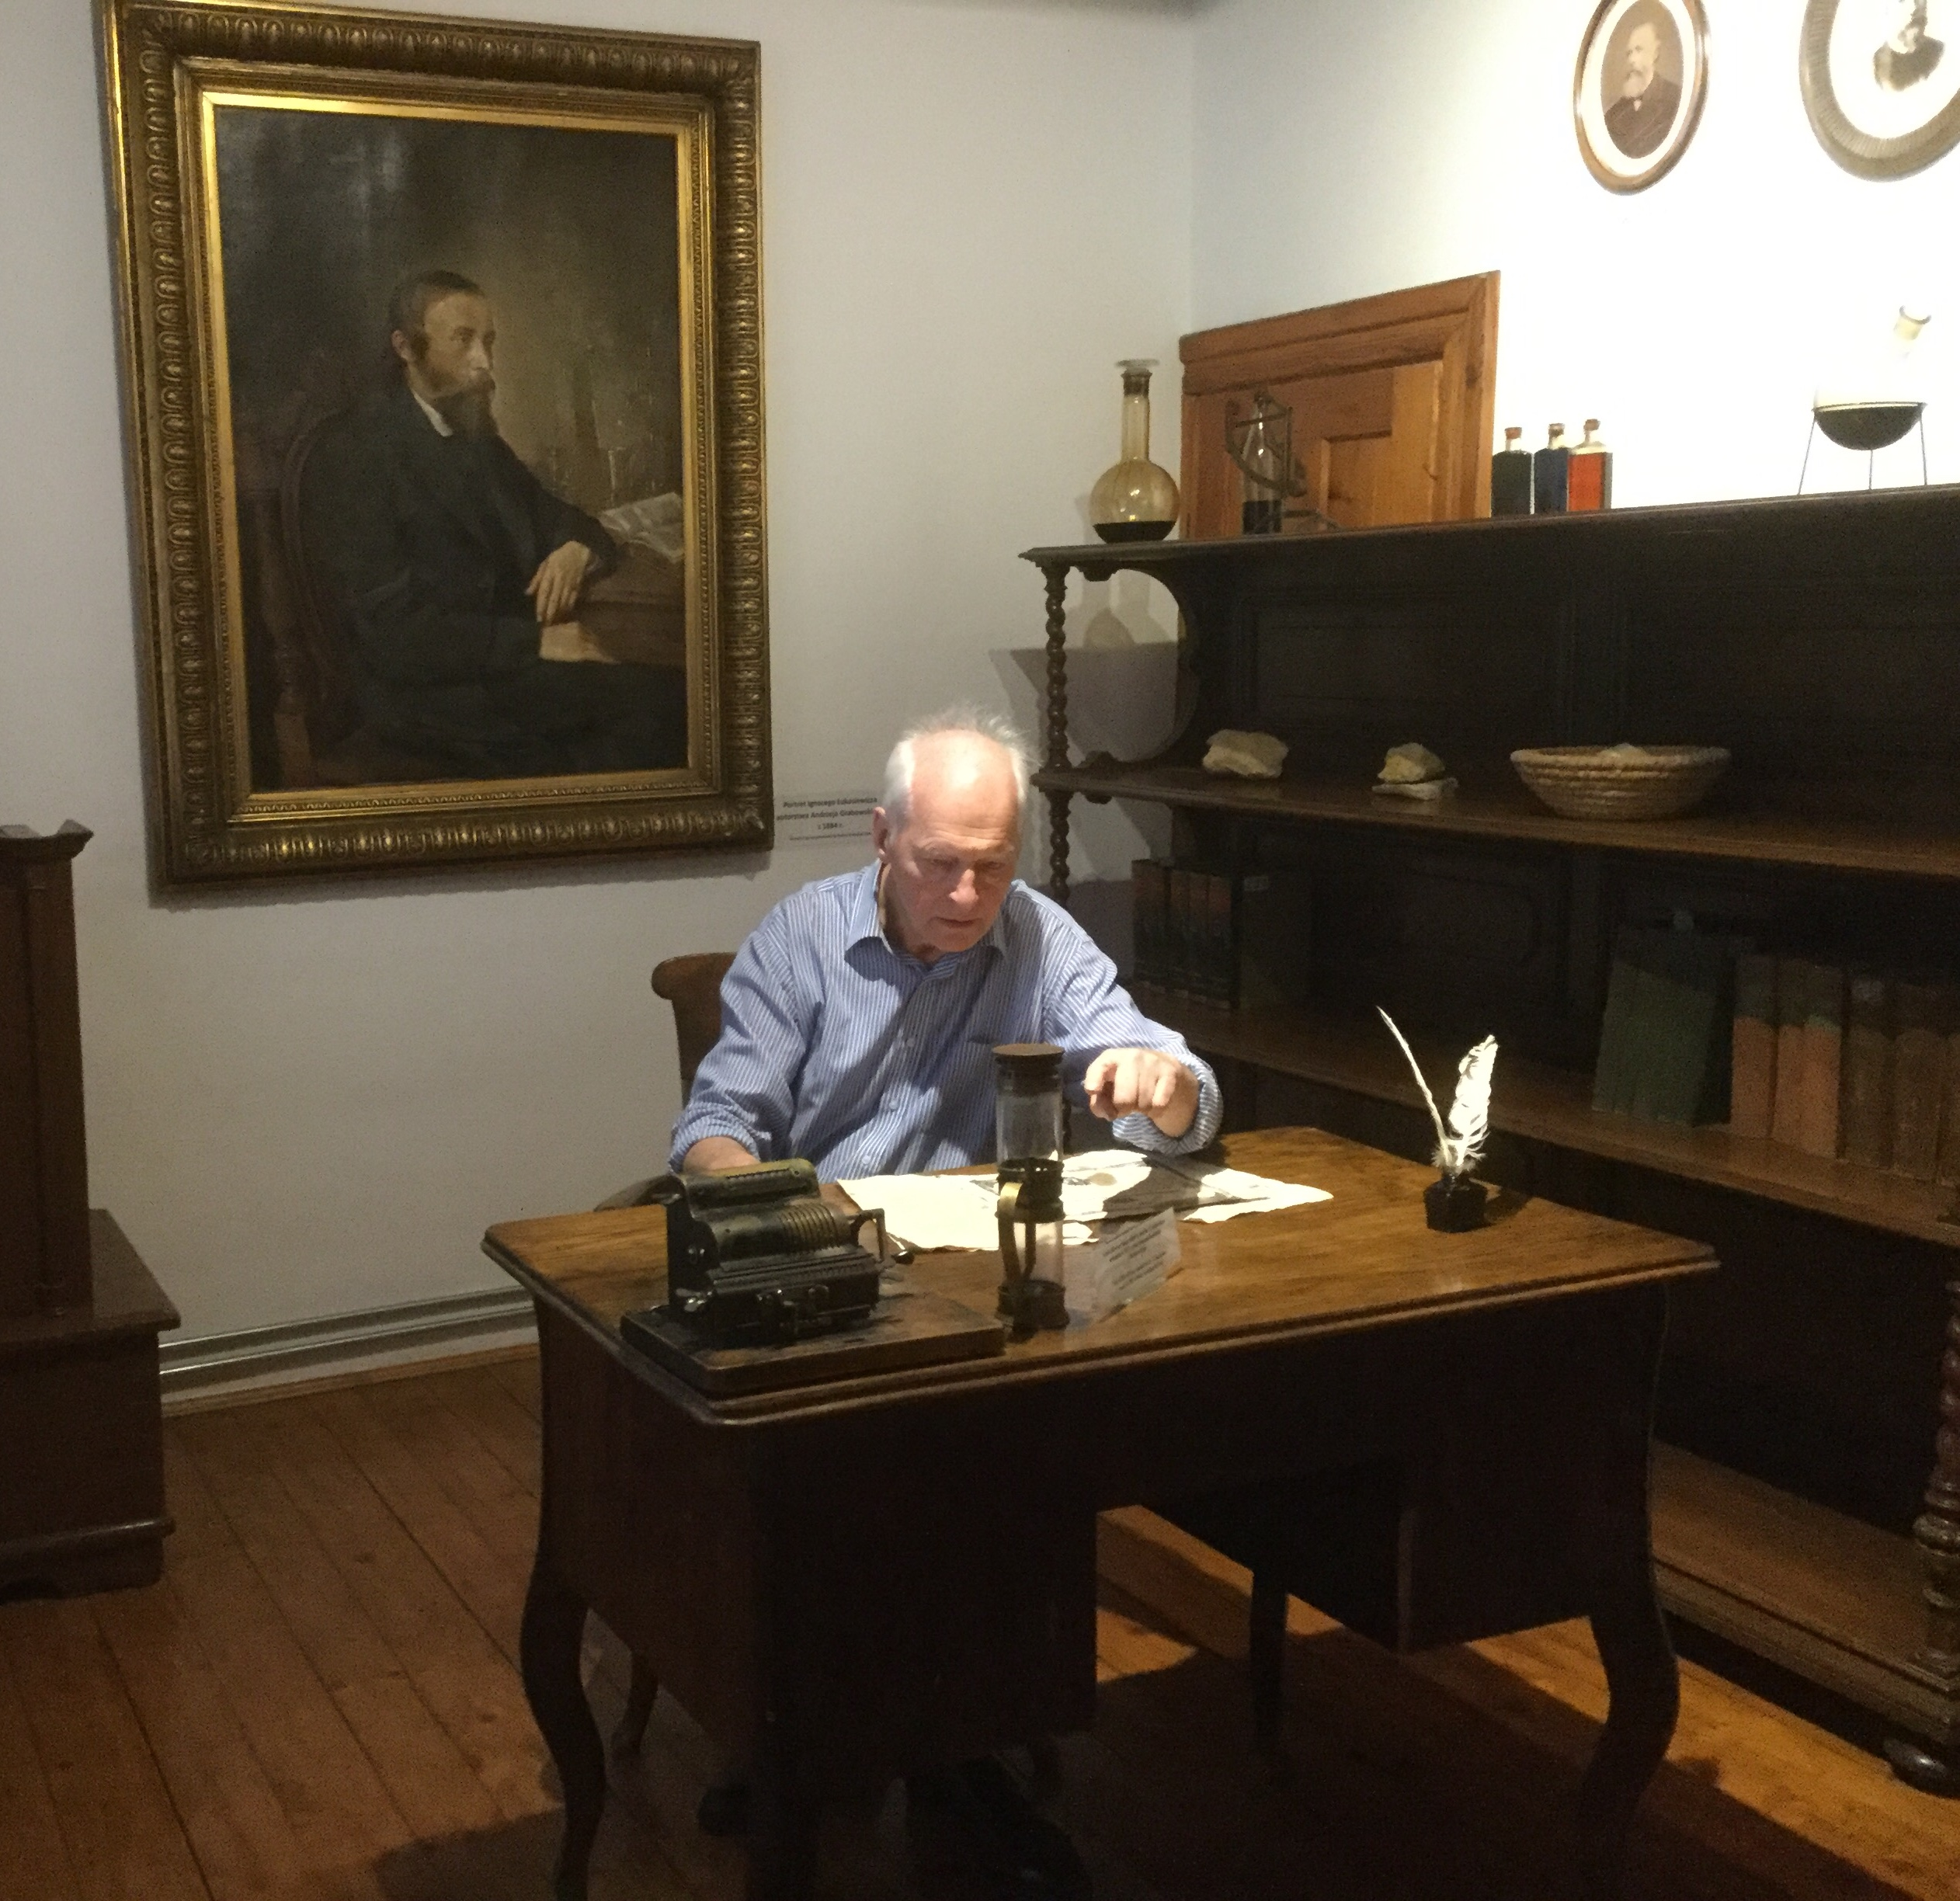 Andrew at a desk